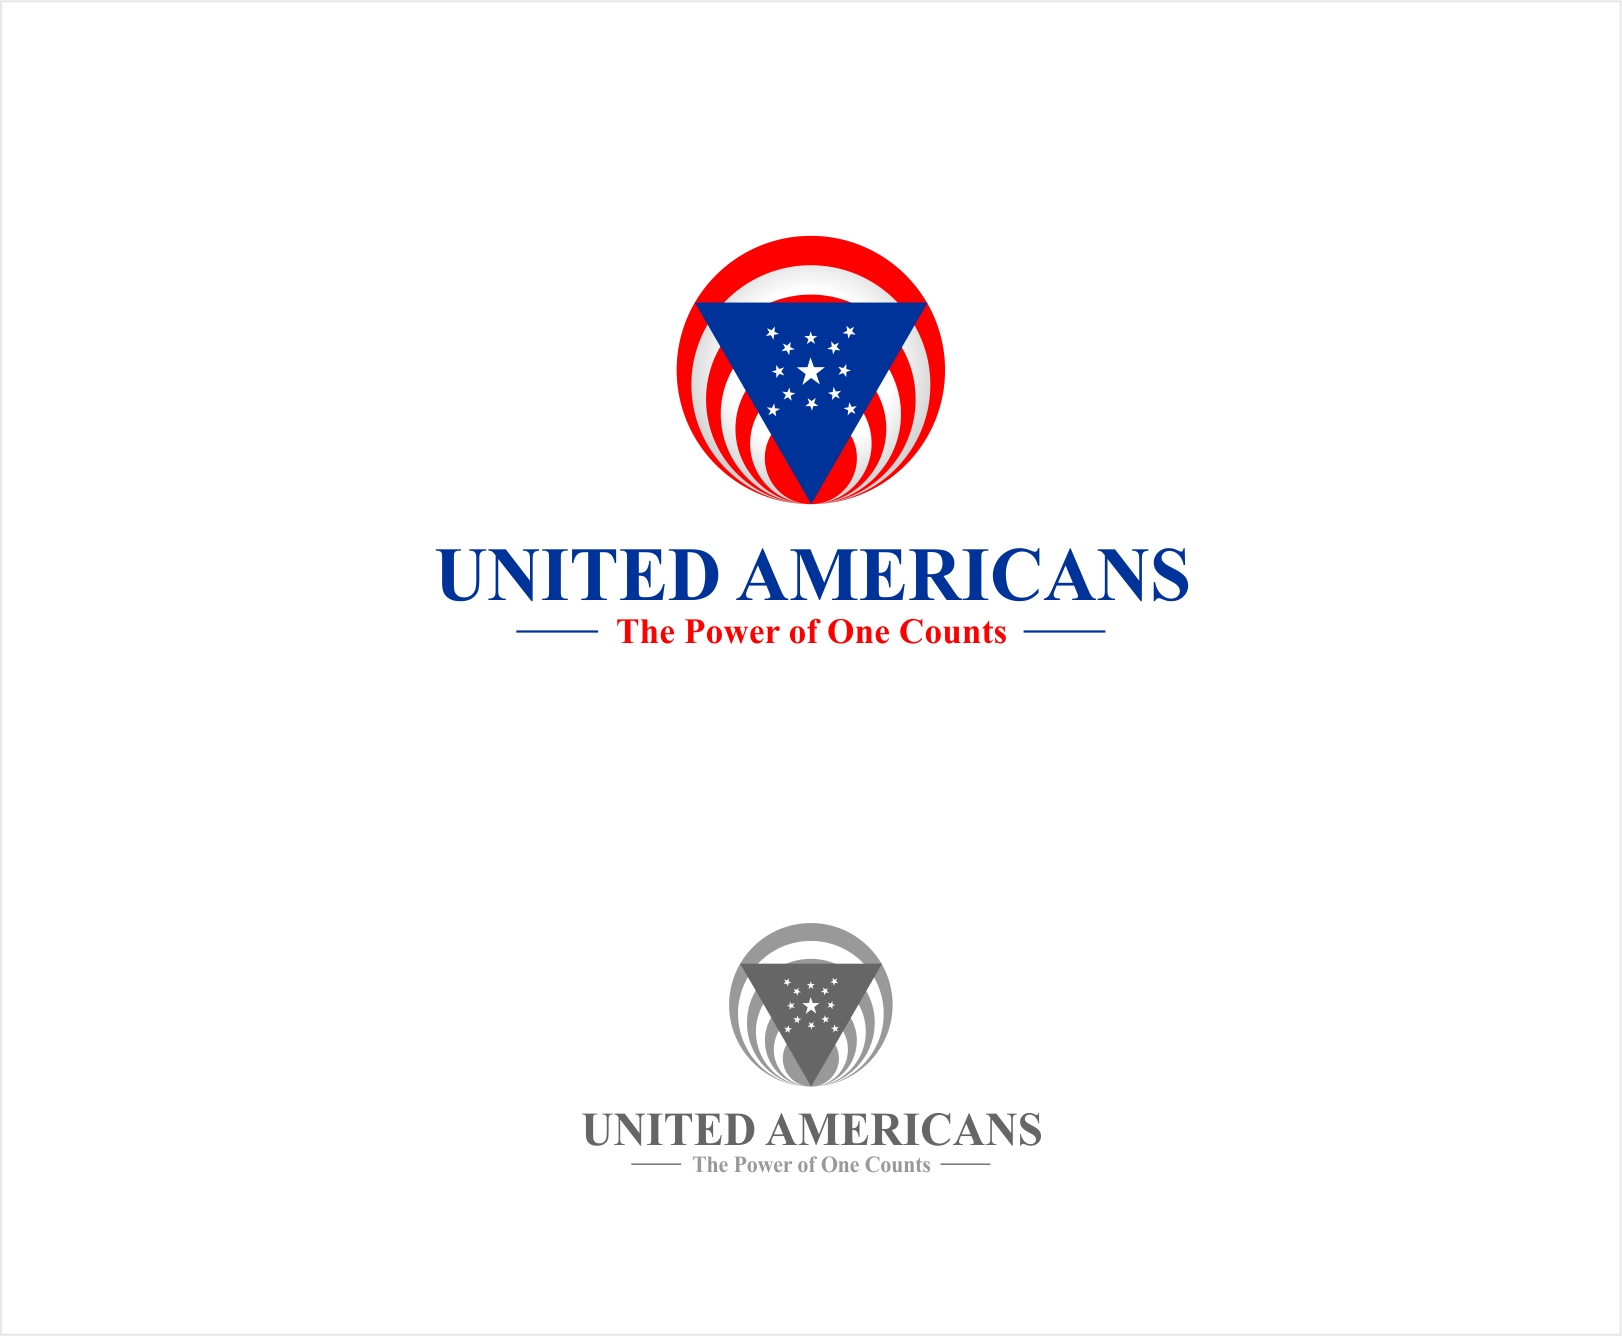 Logo Design by haidu - Entry No. 52 in the Logo Design Contest Creative Logo Design for United Americans.